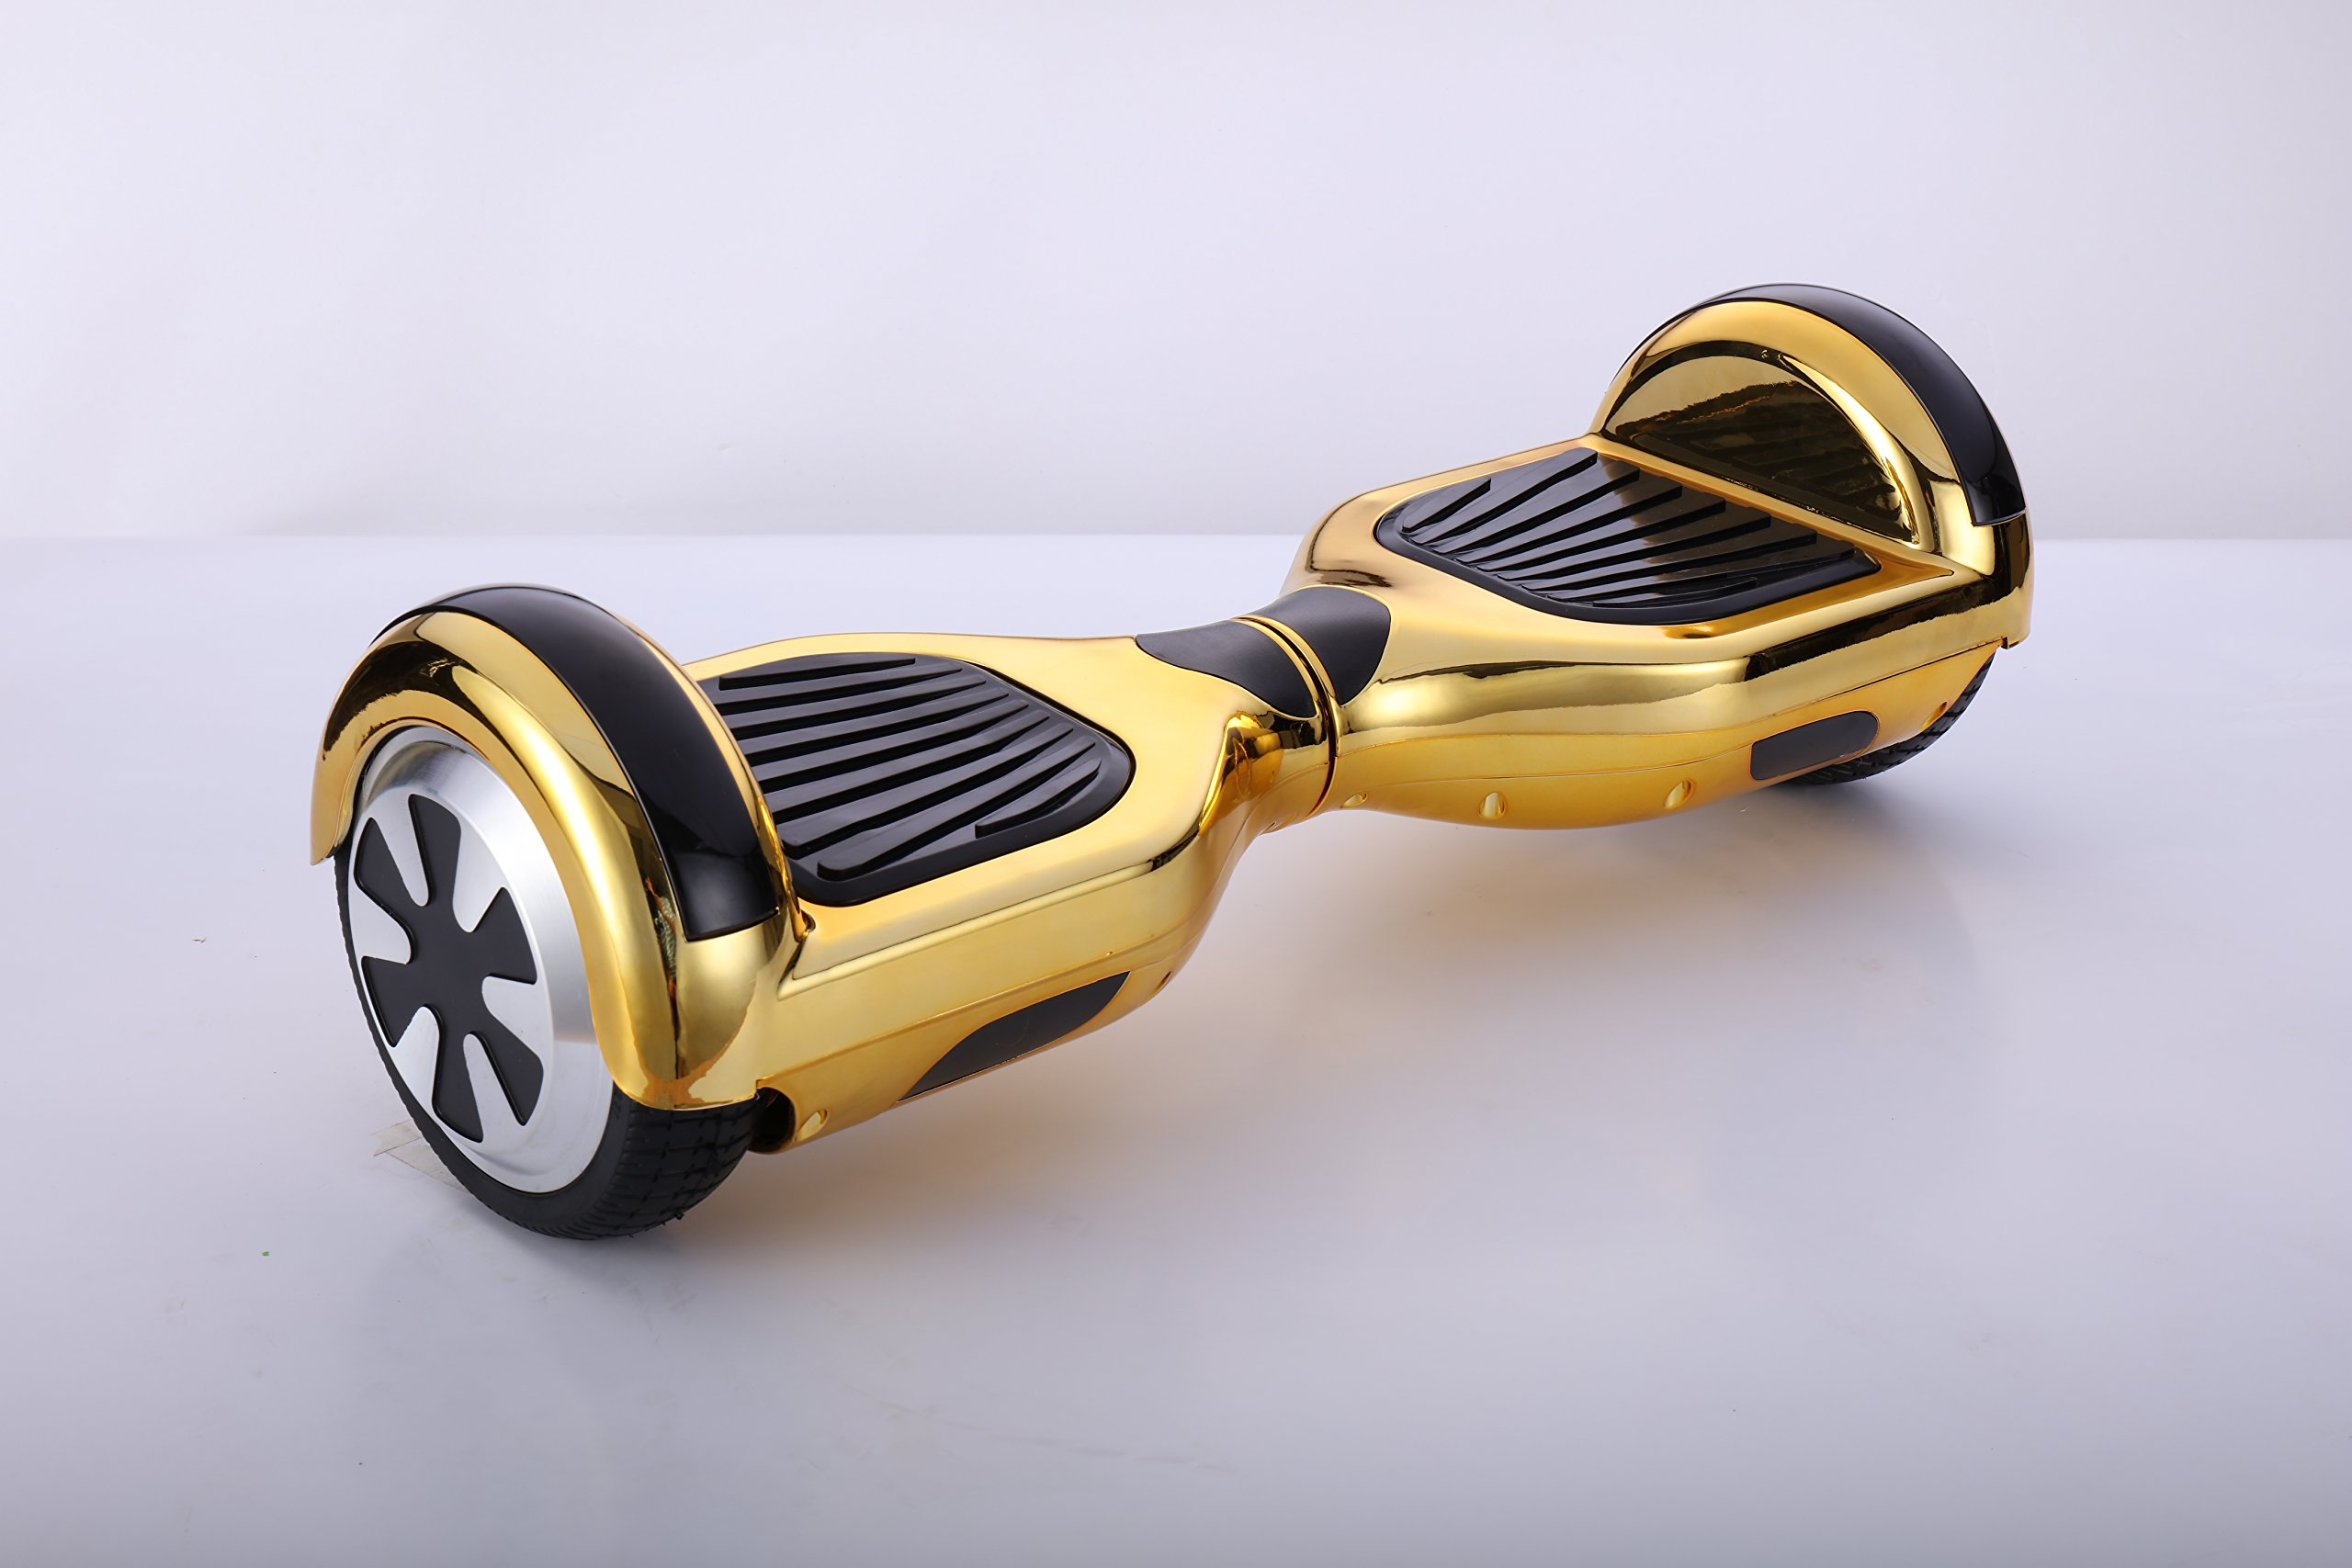 SMART BALANCE 6.5'' HOVERBOARD WITH BLUETOOTH - UL 2272 - UN 38.3 SAFETY CERTIFIED PERSONAL TRANSPORTATON (CHROME GOLD) by SMART BALANCE HOVERBOARDS